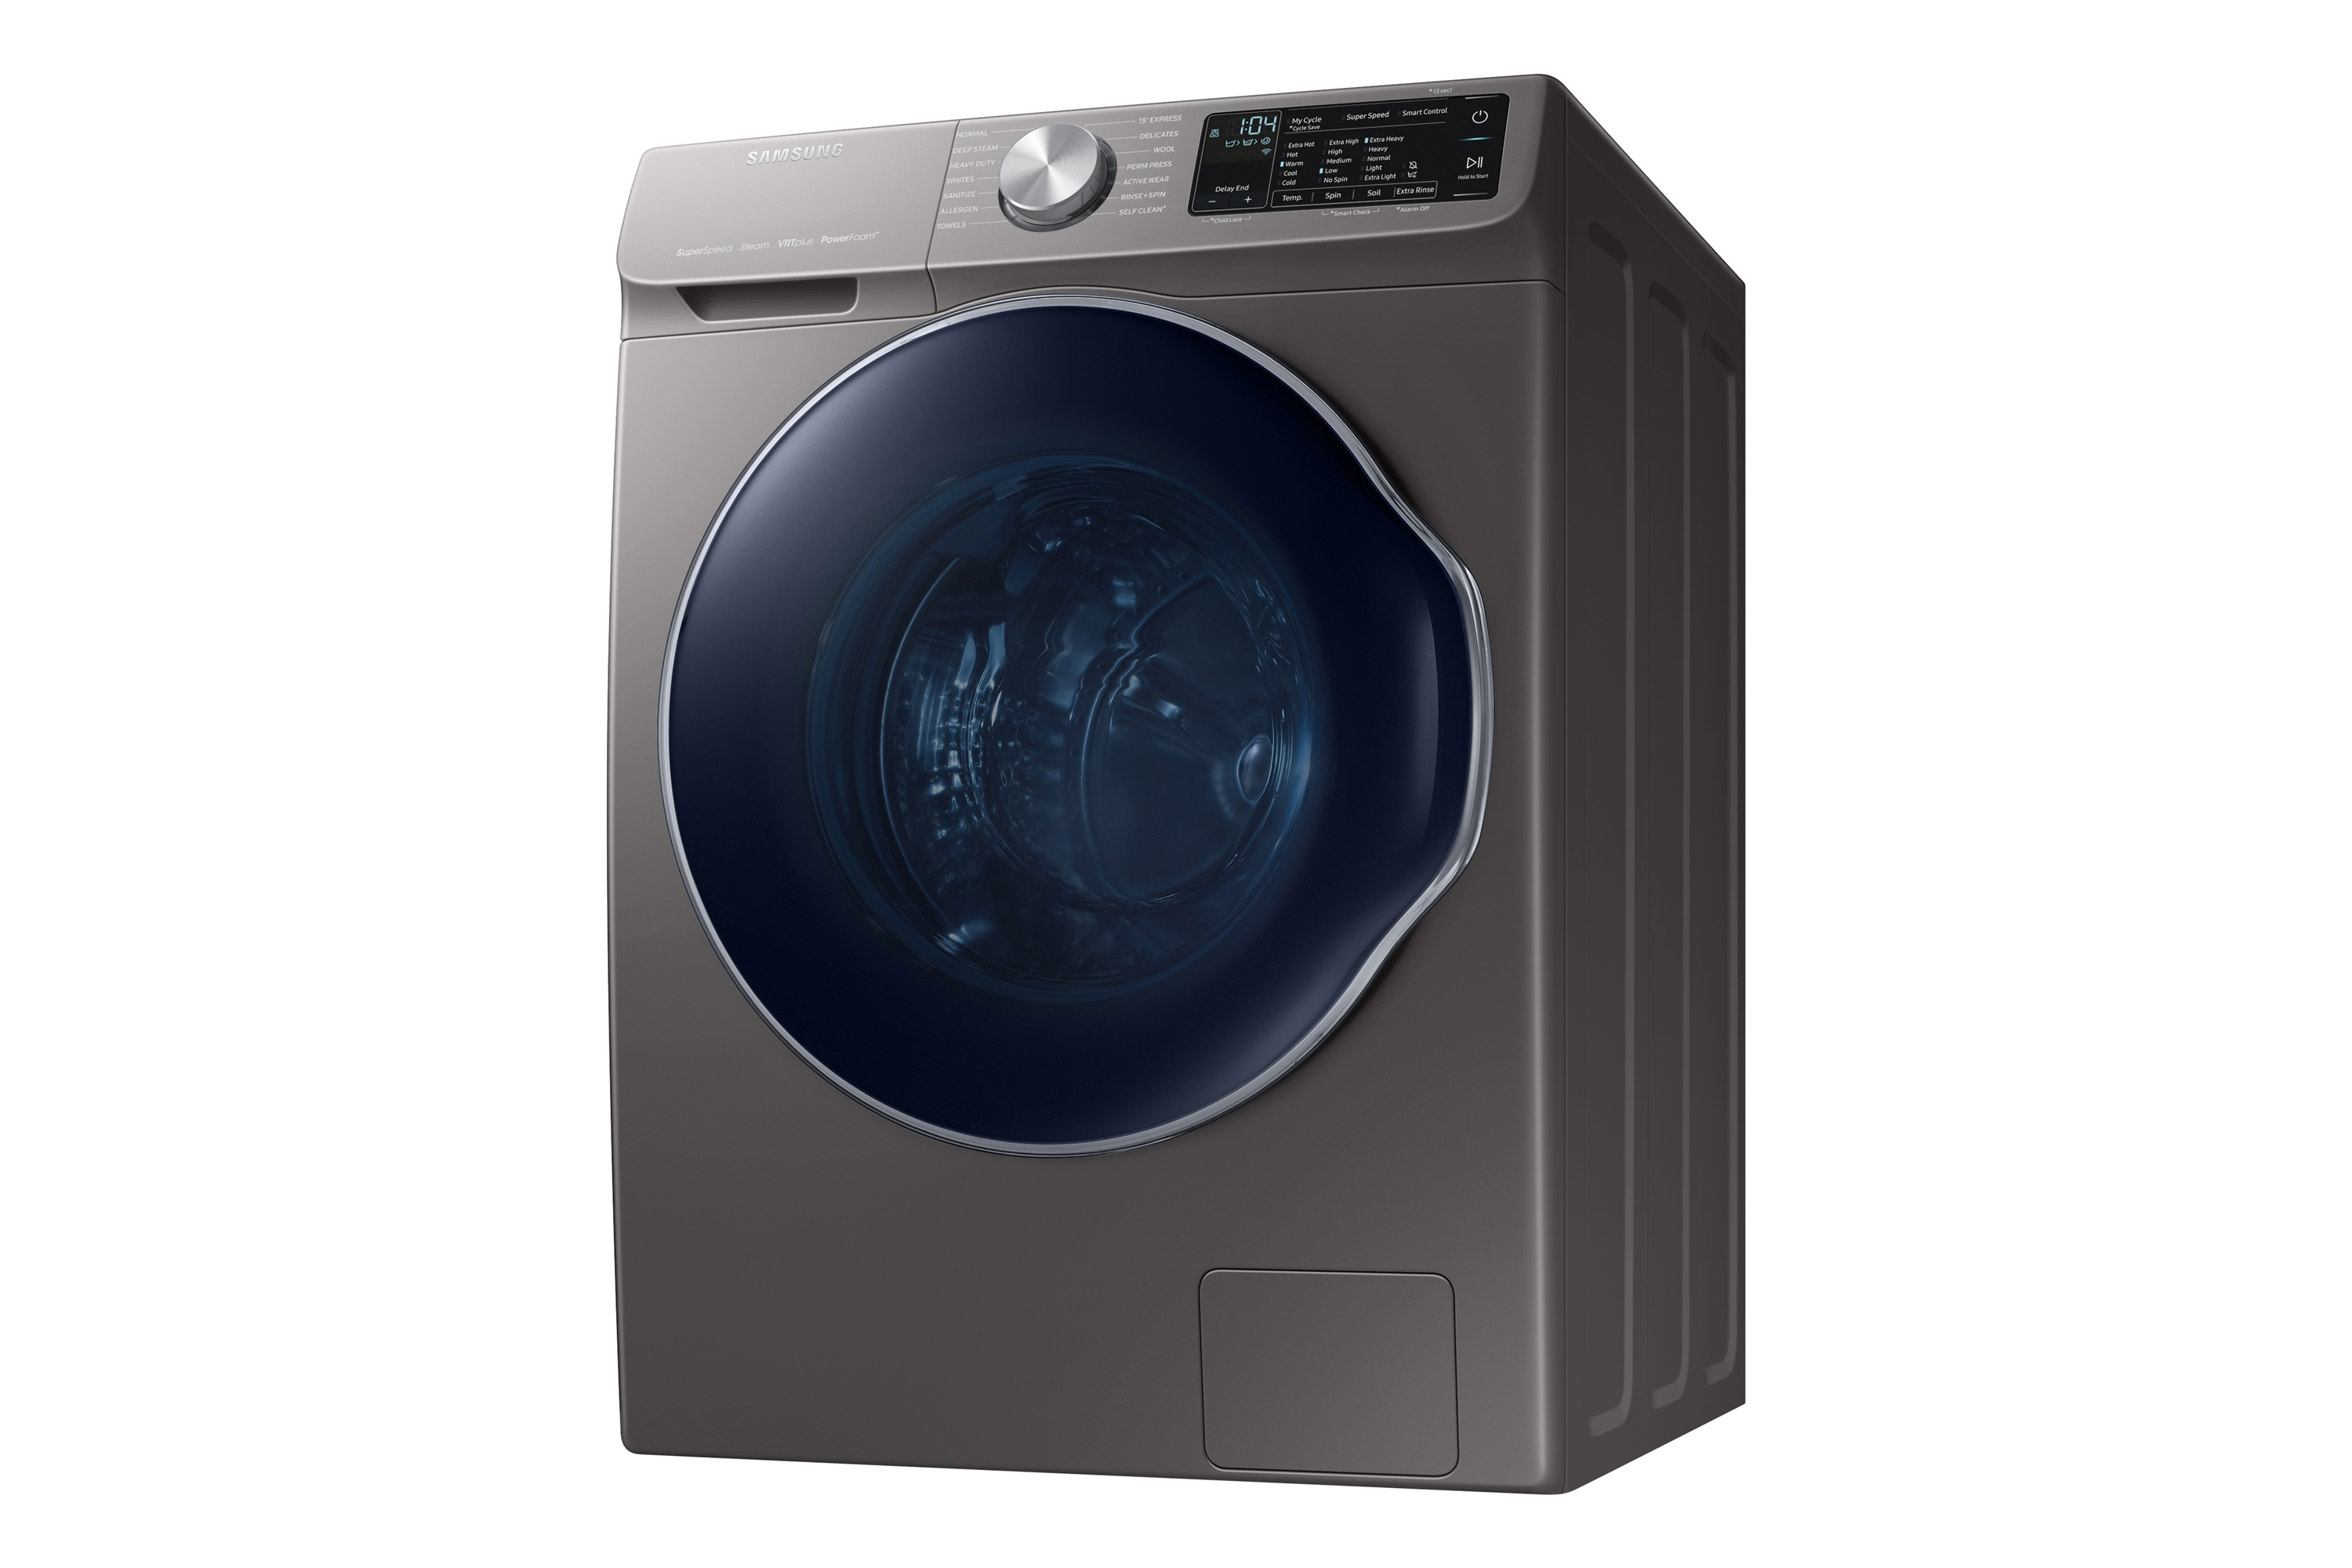 Samsung Expands Laundry Line Up with New Premium Compact ...